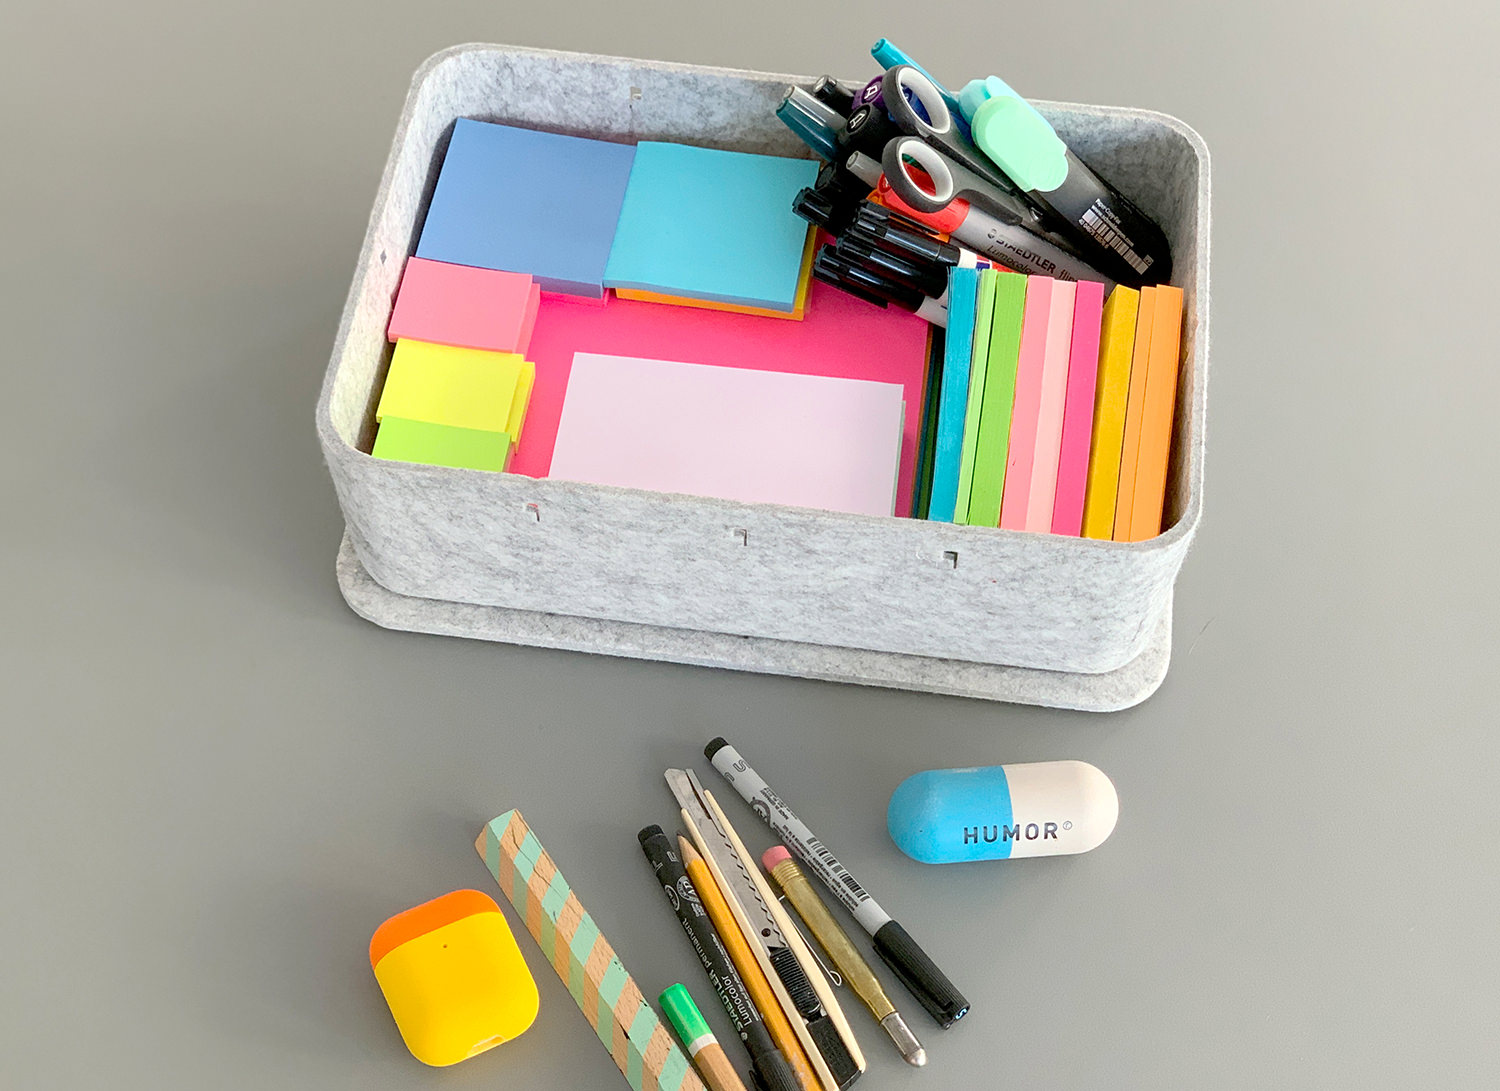 we see a workshop toolbox with pencils and post its